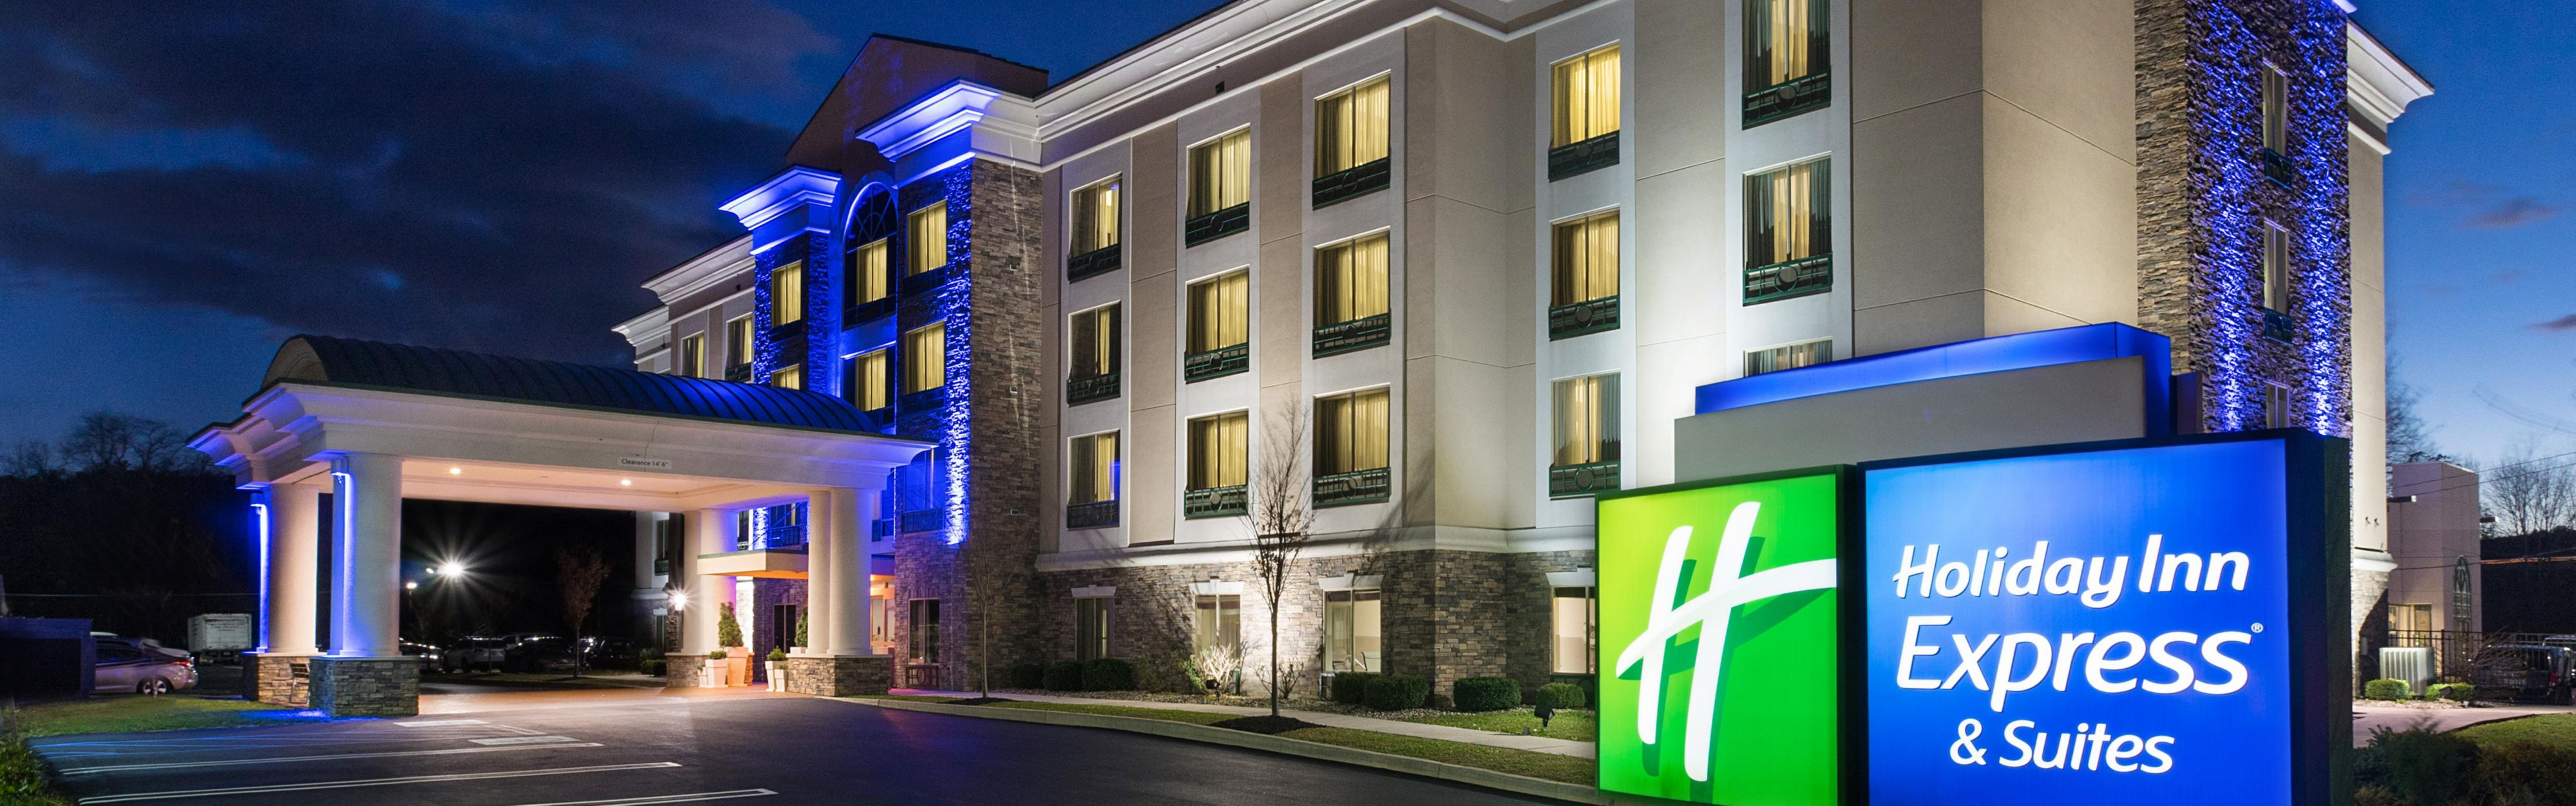 Holiday Inn Express Amp Suites Stroudsburg Poconos